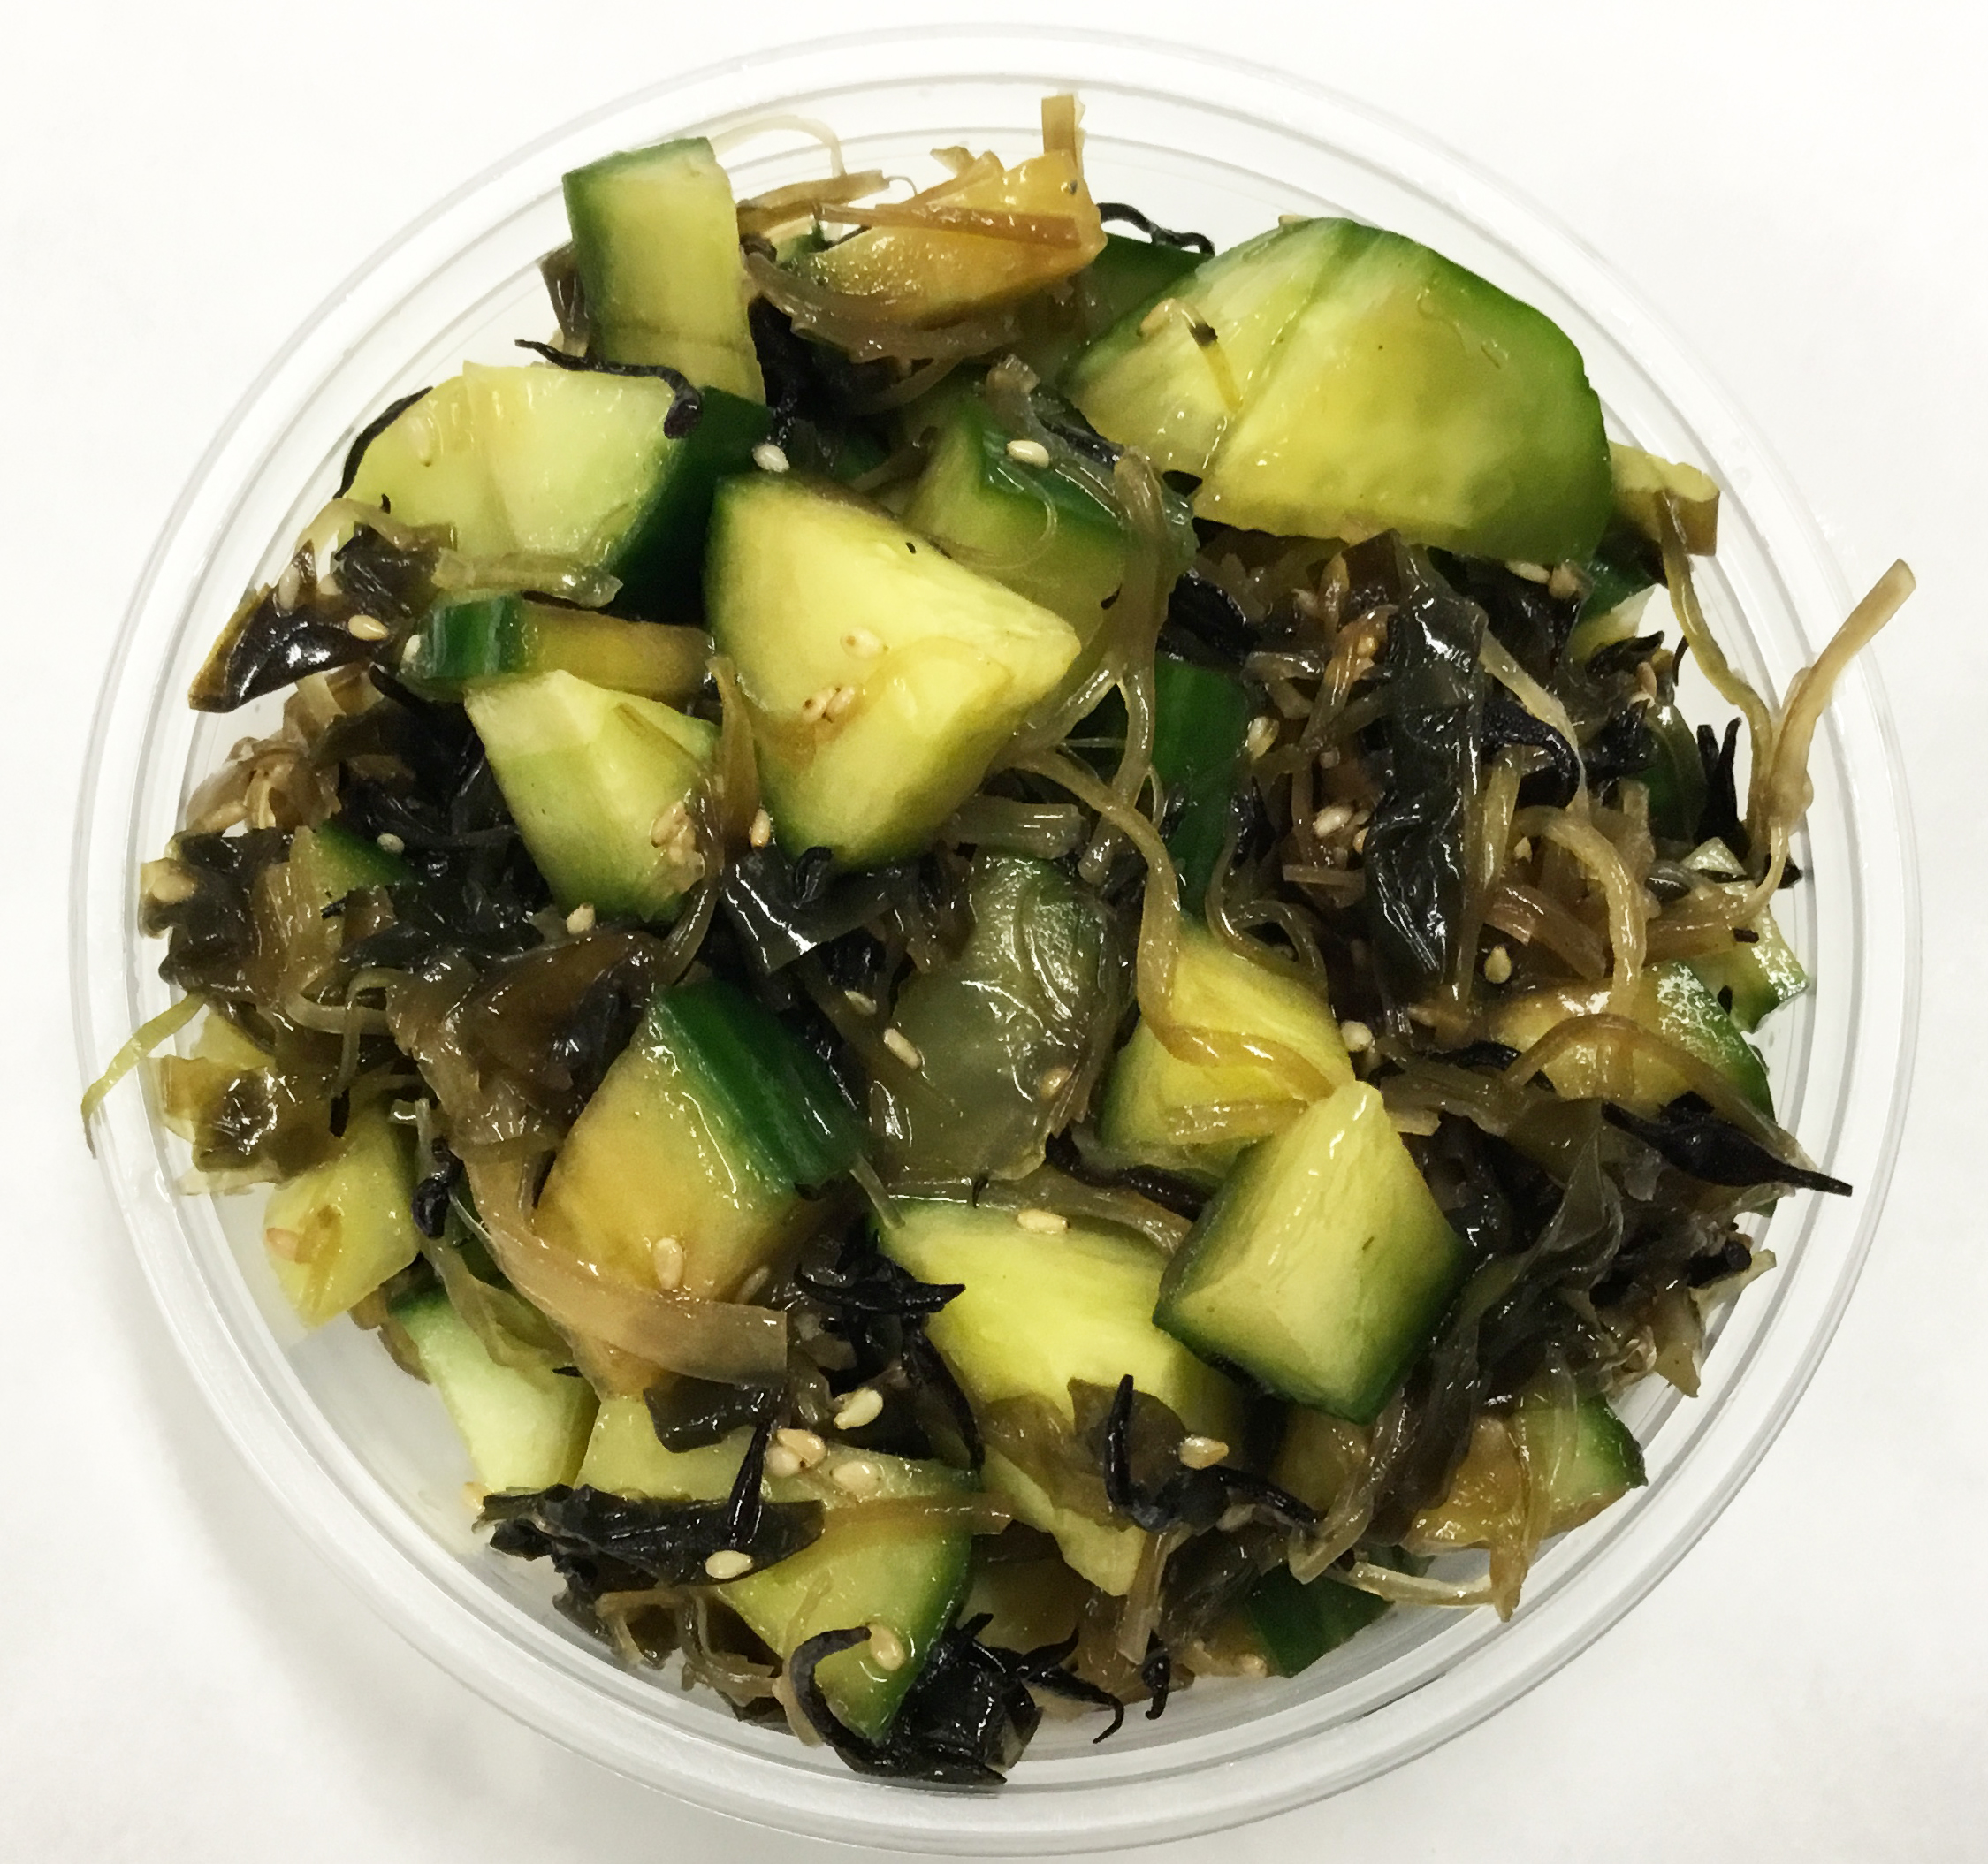 Cucumber and seaweed salad with sesame seeds, tamari and toasted sesame oil.